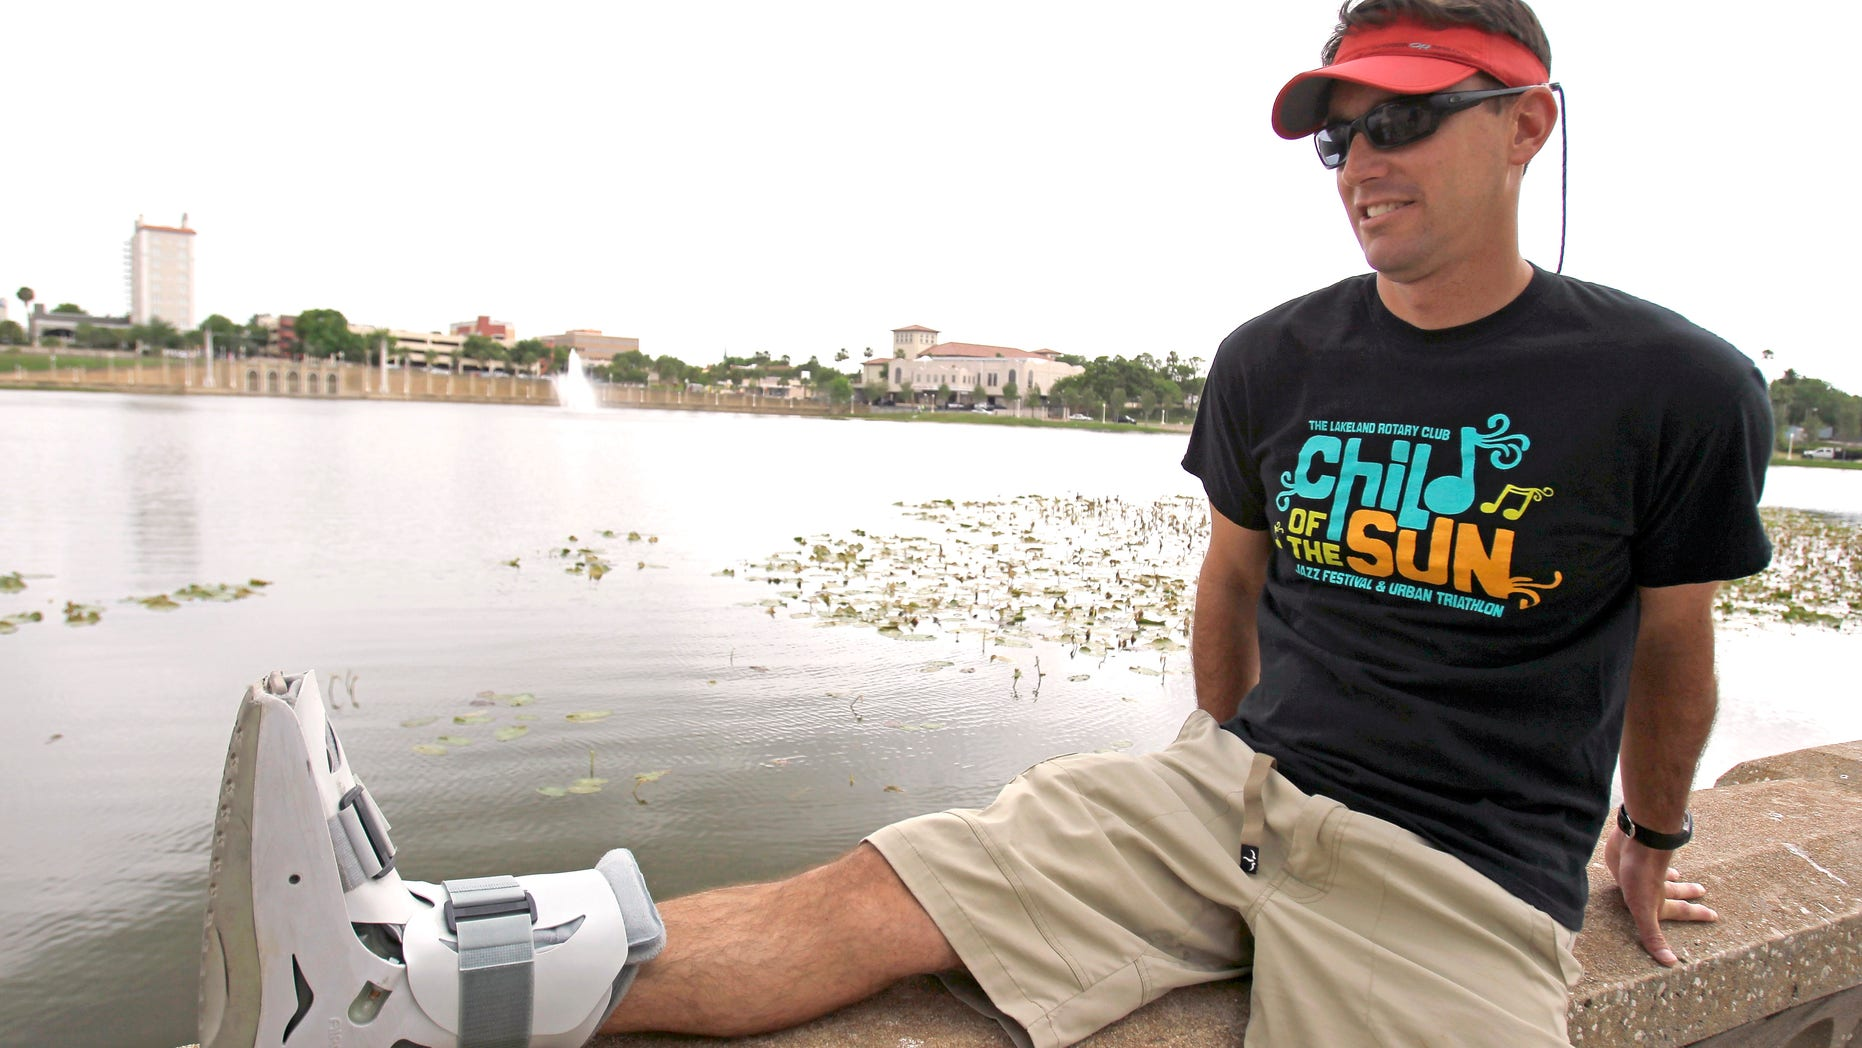 Greg Farris rests his foot that he injured while running in barefoot running shoes.(AP Photo/John Raoux)